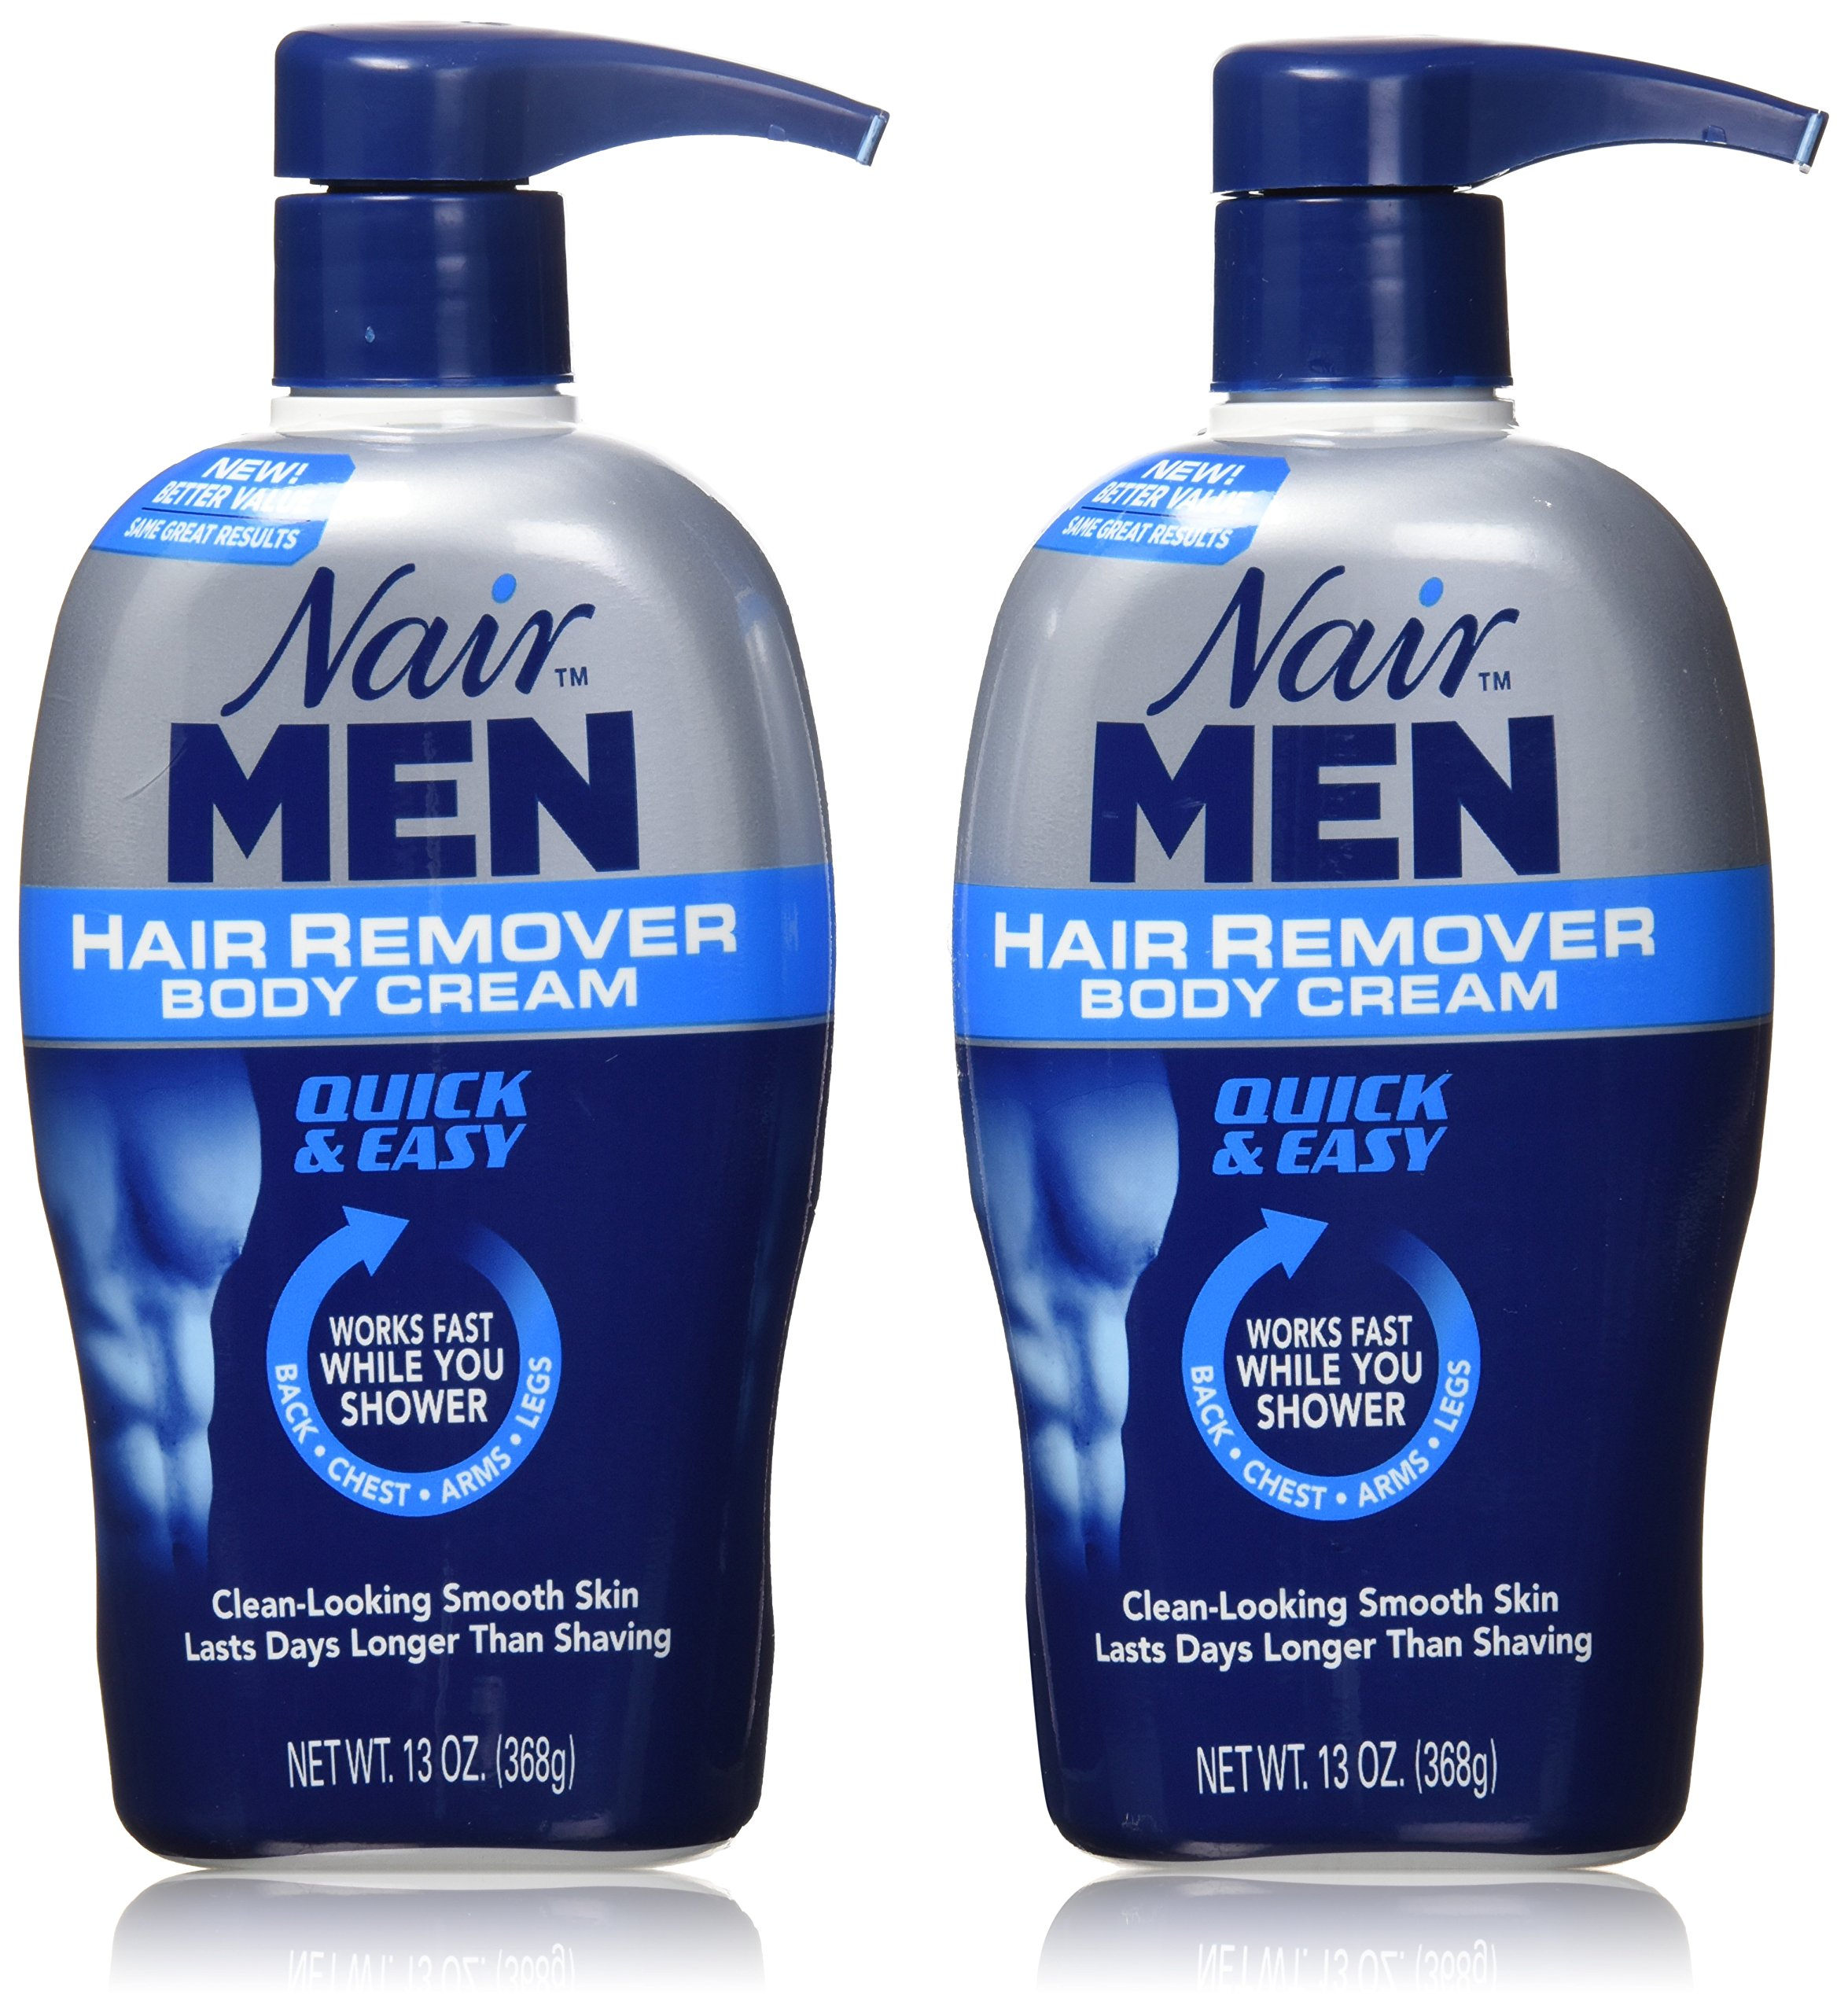 Nair Men Hair Removal Body Cream 13 oz (Pack of 2)